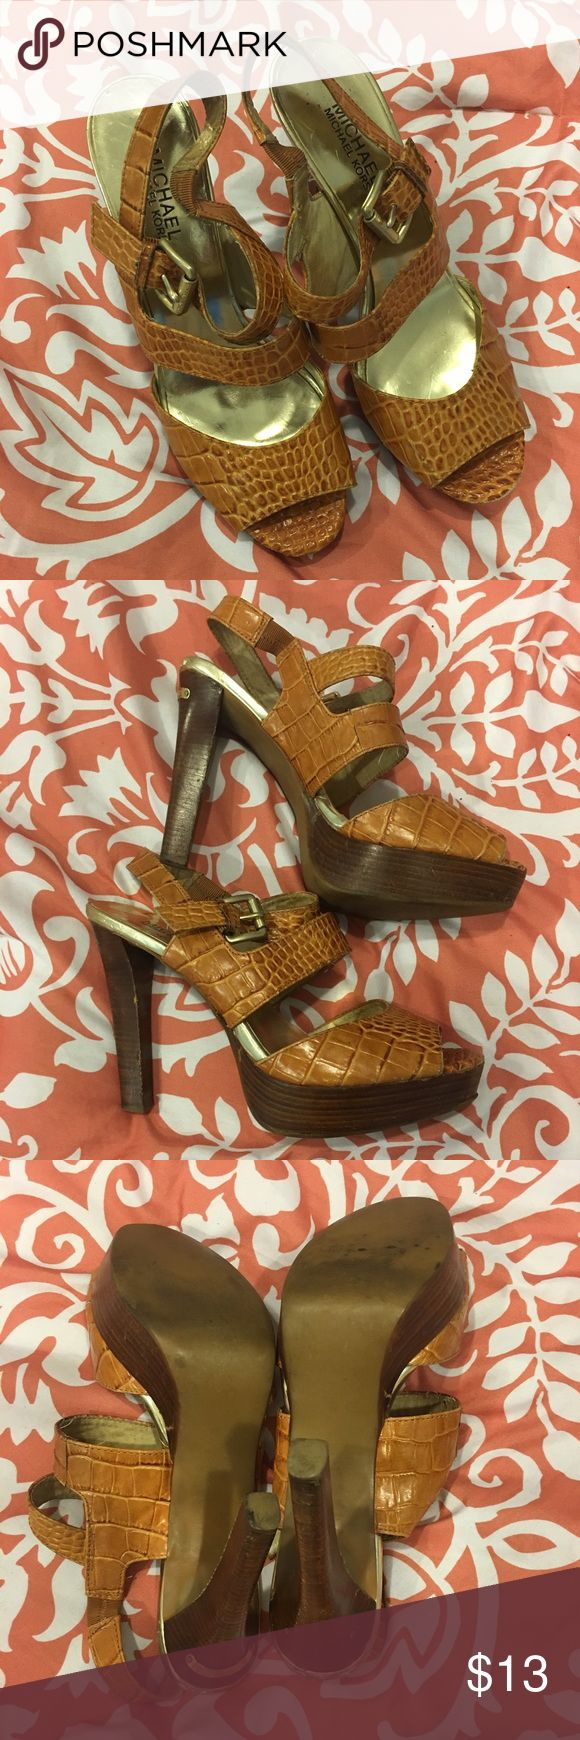 Authentic women's Michael Kors heels Women's authentic Michael Kors heels. Size 8.5. Used condition as seen in pics Michael Kors Shoes Heels